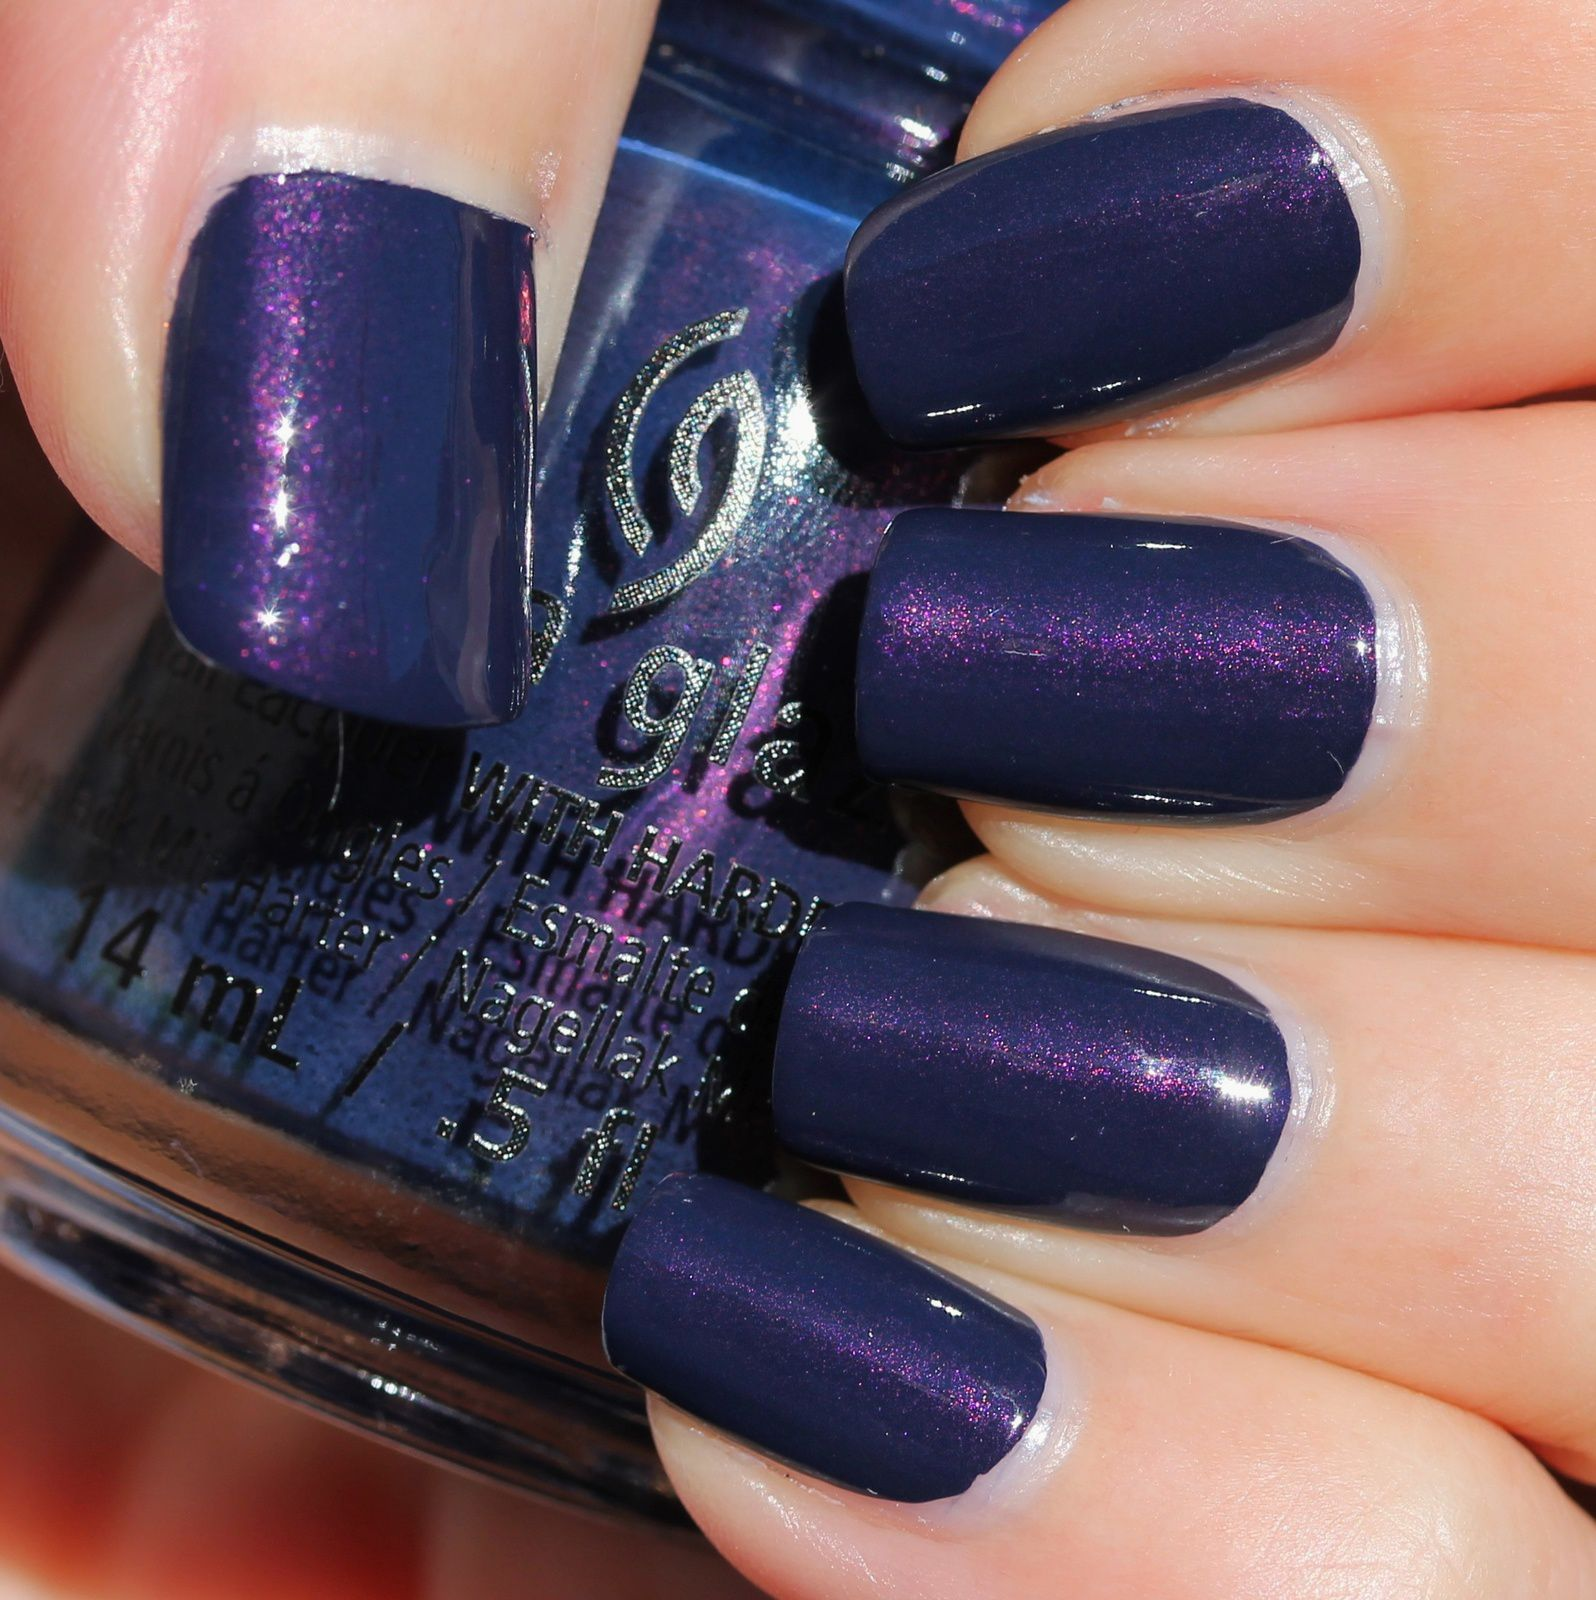 Duri Rejuvacote / China Glaze Sleeping Under the Stars / HK Girl Top Coat